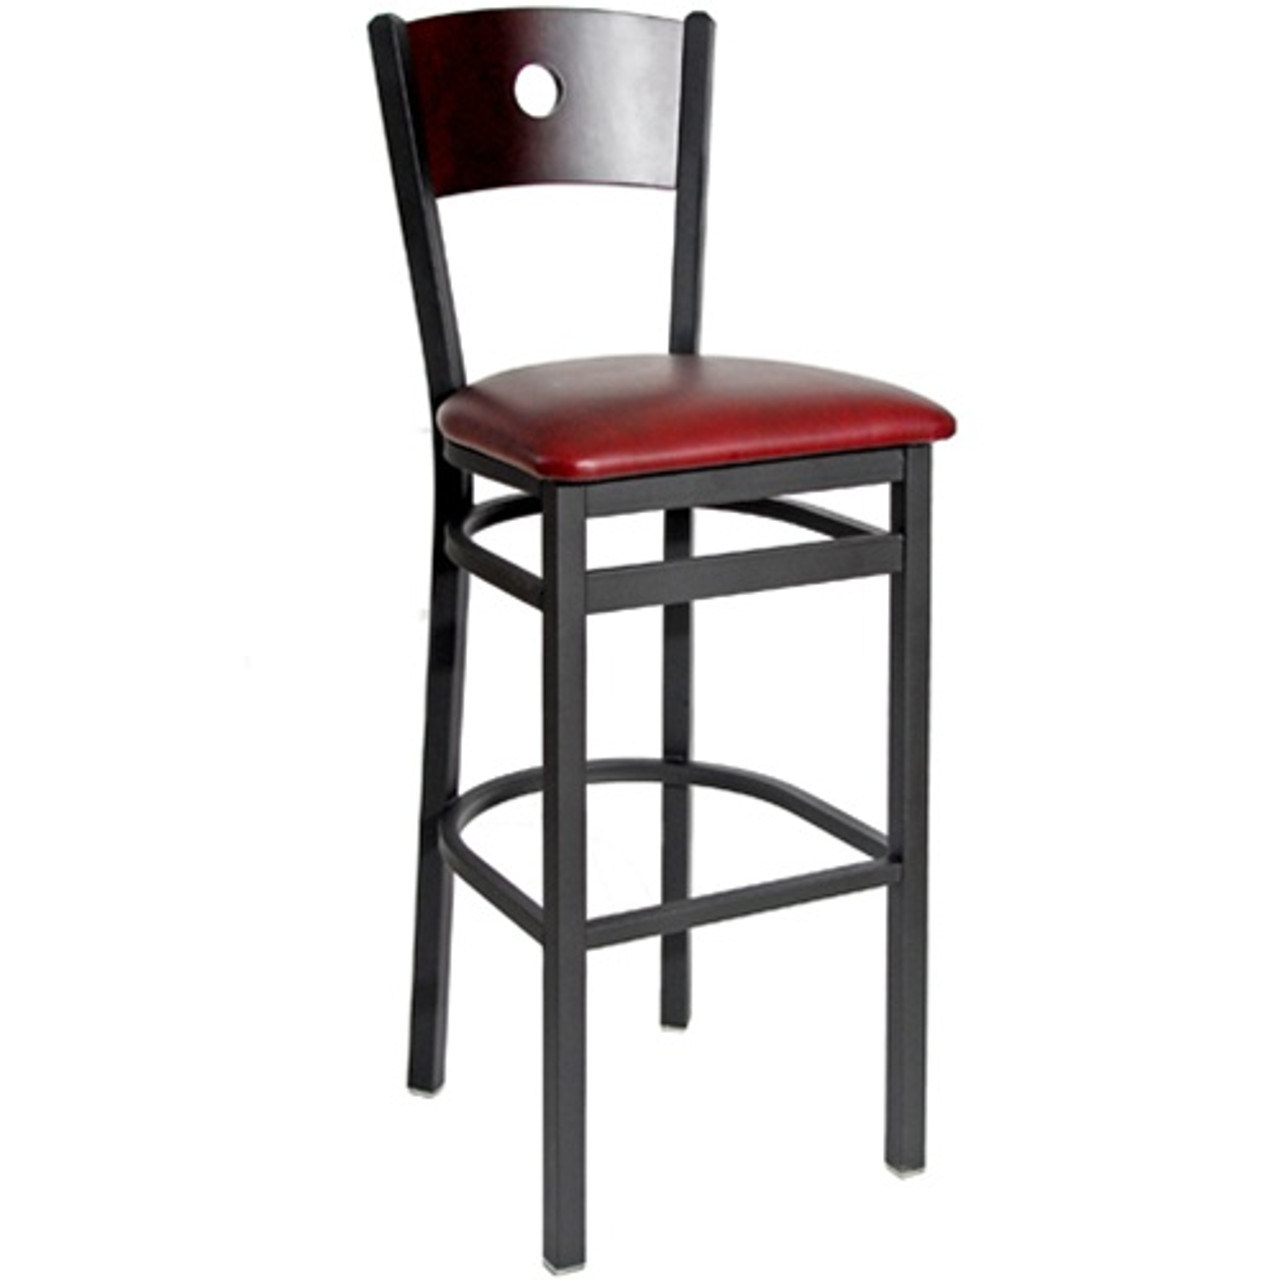 Prime Bfm Seating Darby Black Metal Circle Wood Back Restaurant Bar Stool With Vinyl Seat 2152B Sbv Machost Co Dining Chair Design Ideas Machostcouk